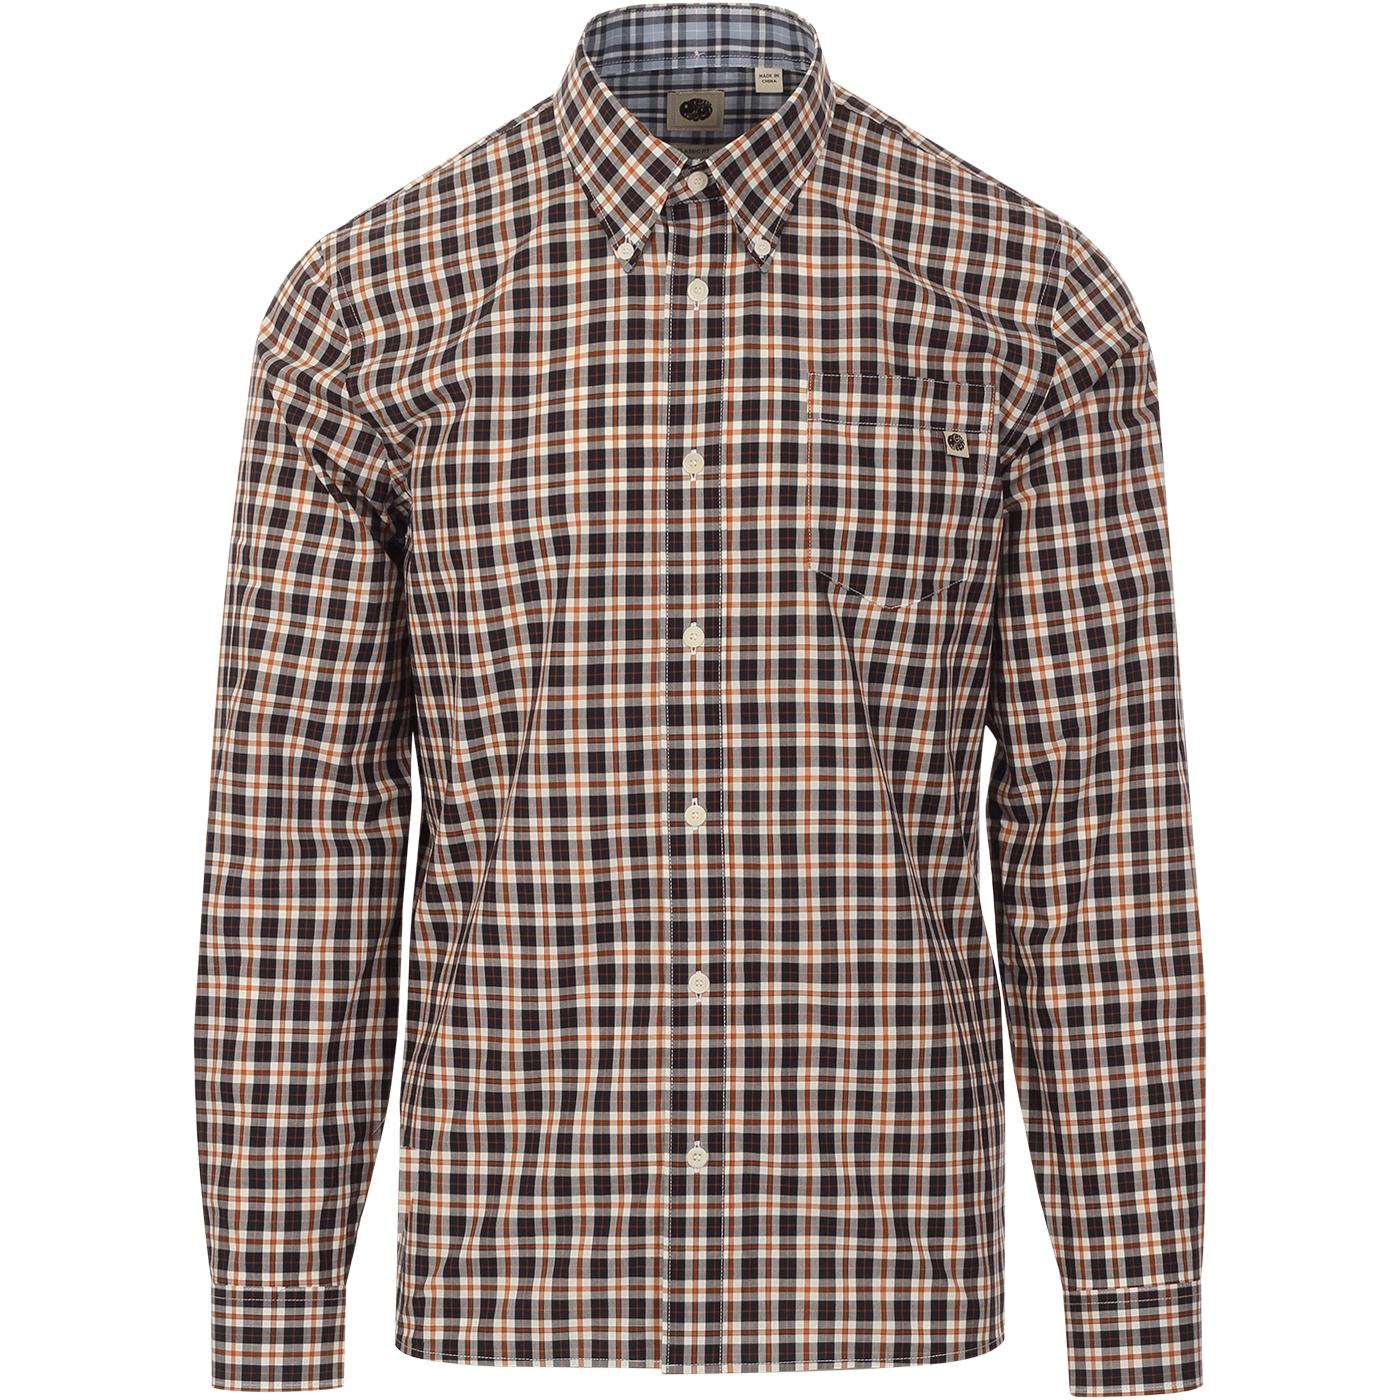 PRETTY GREEN Vintage Gingham Check Shirt In Black